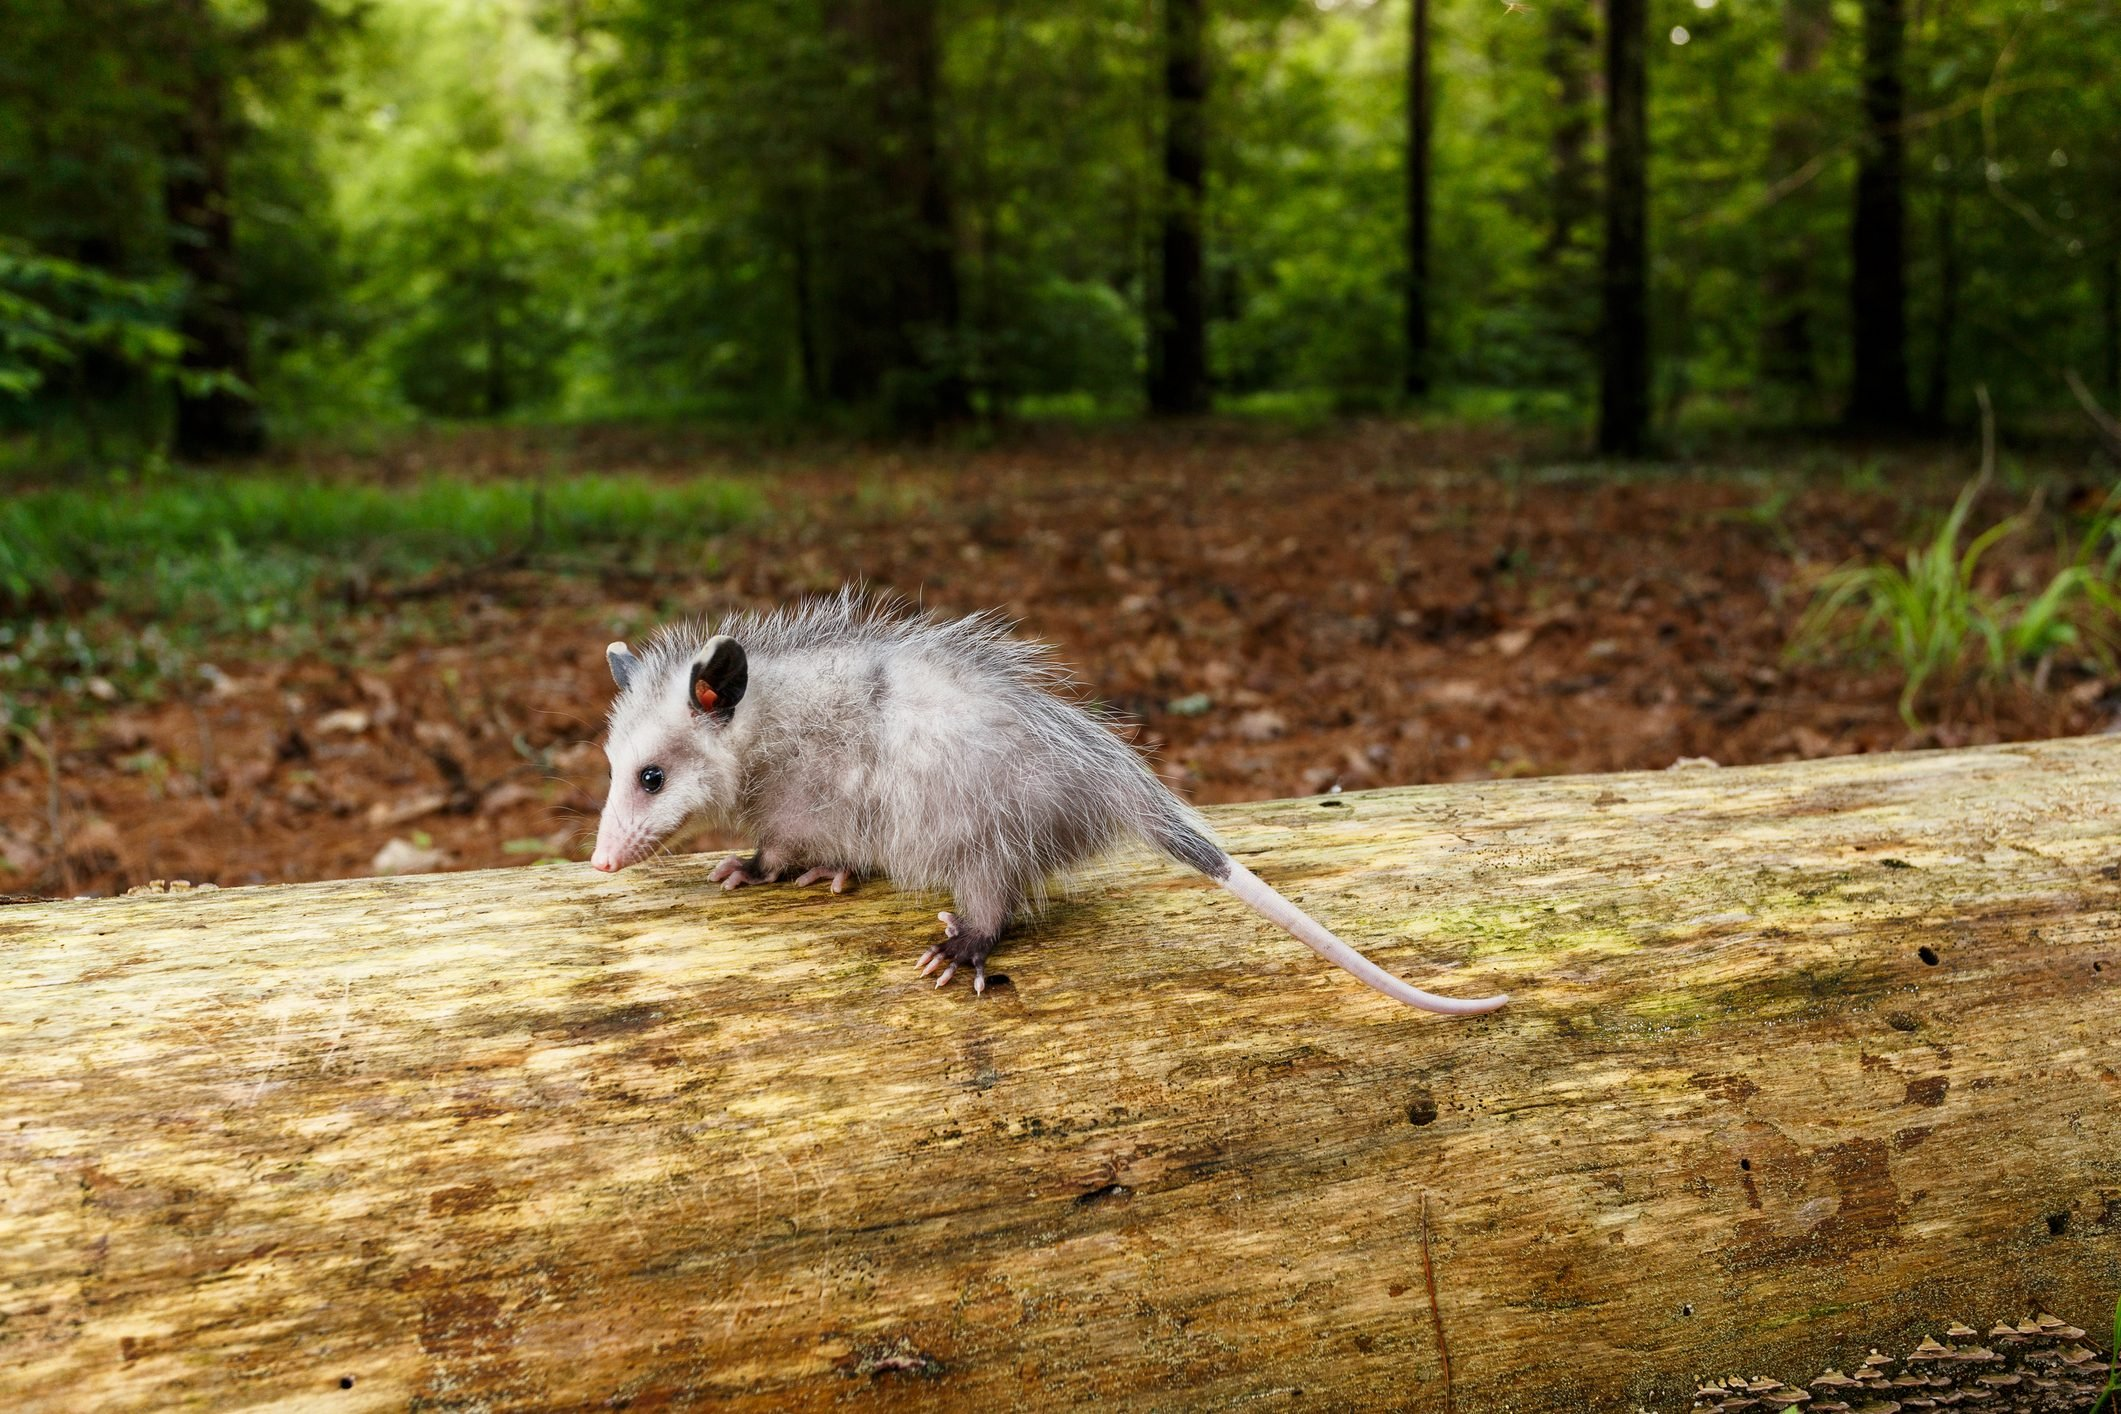 Young Opossum walking on a fallen tree in a forest